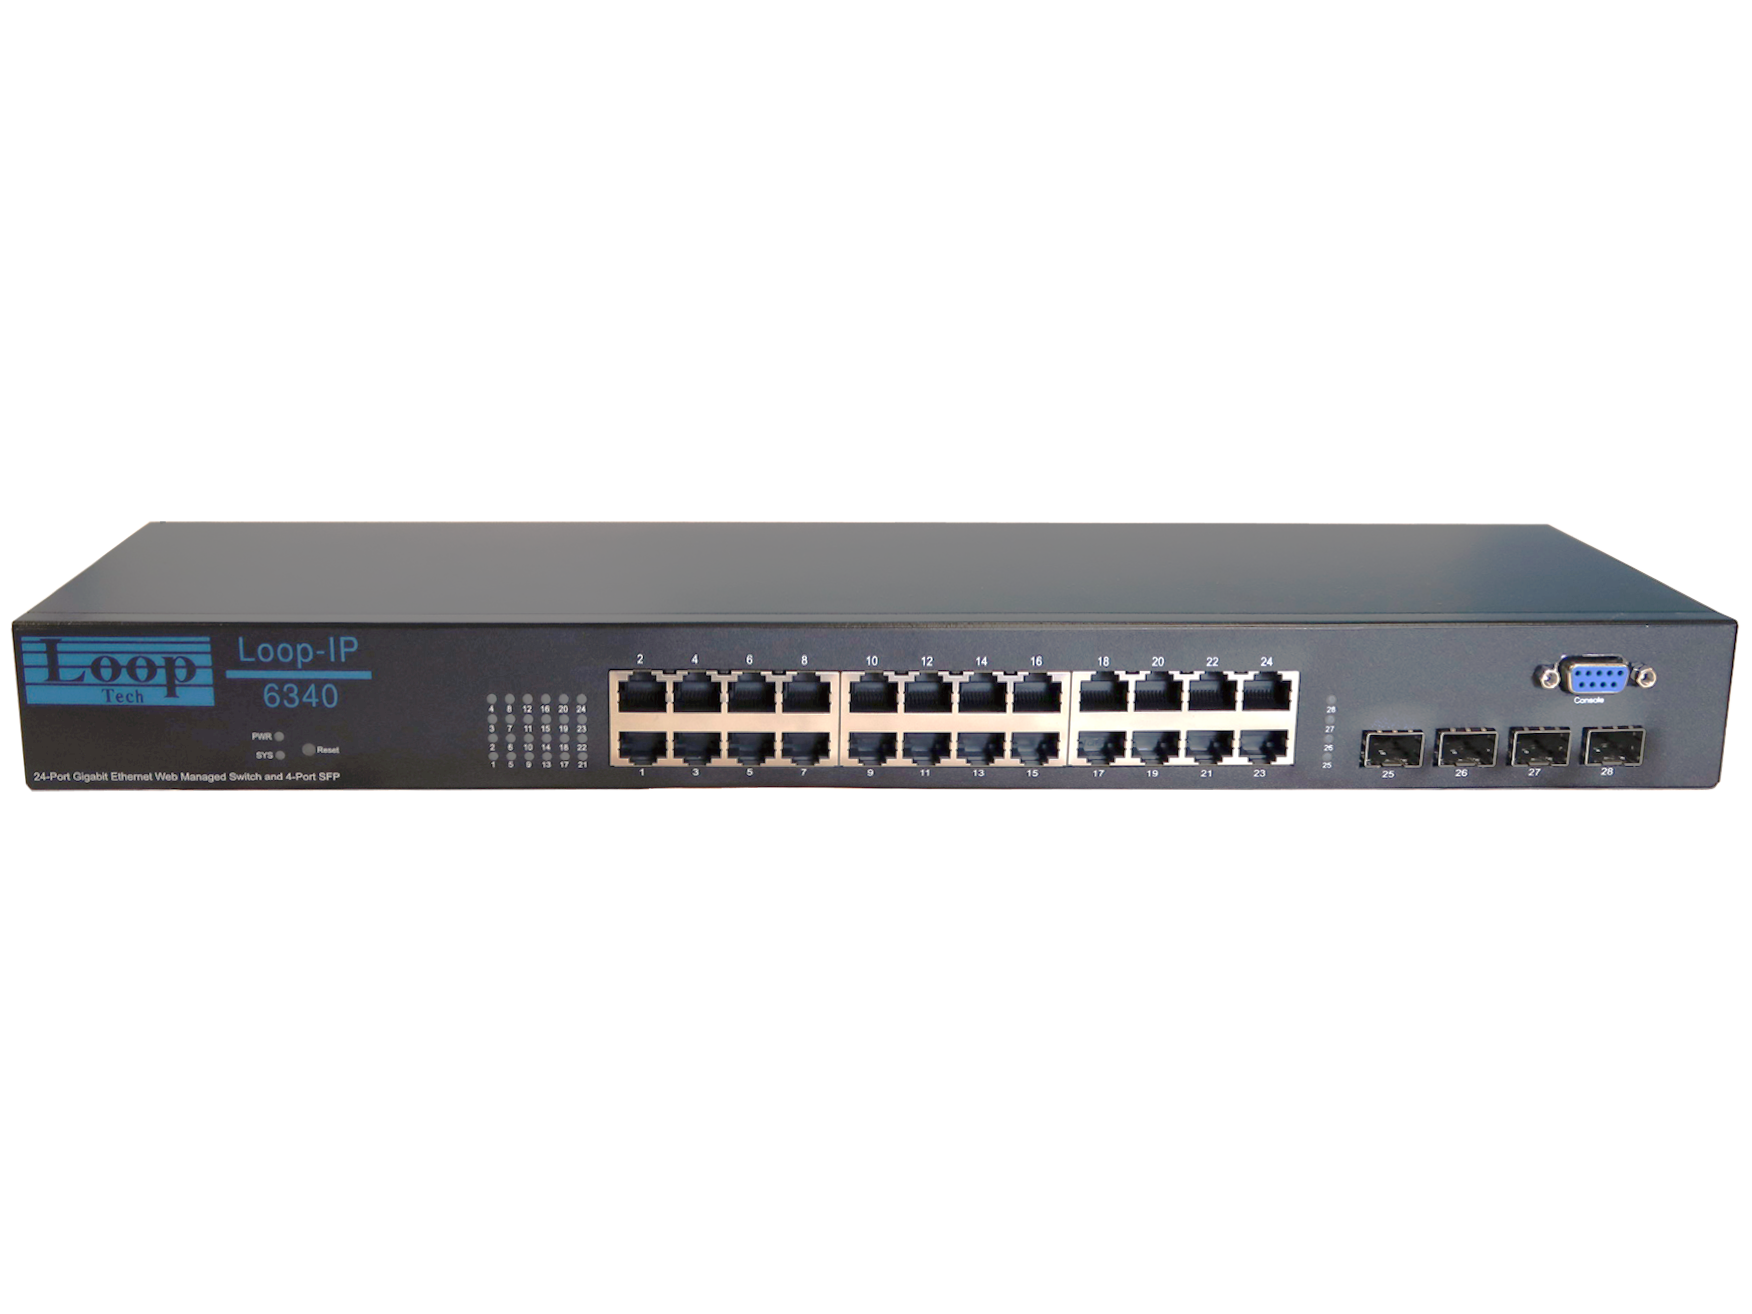 L2 Smart Managed Ethernet Switch with 24 GbE / 4 SFP Ports